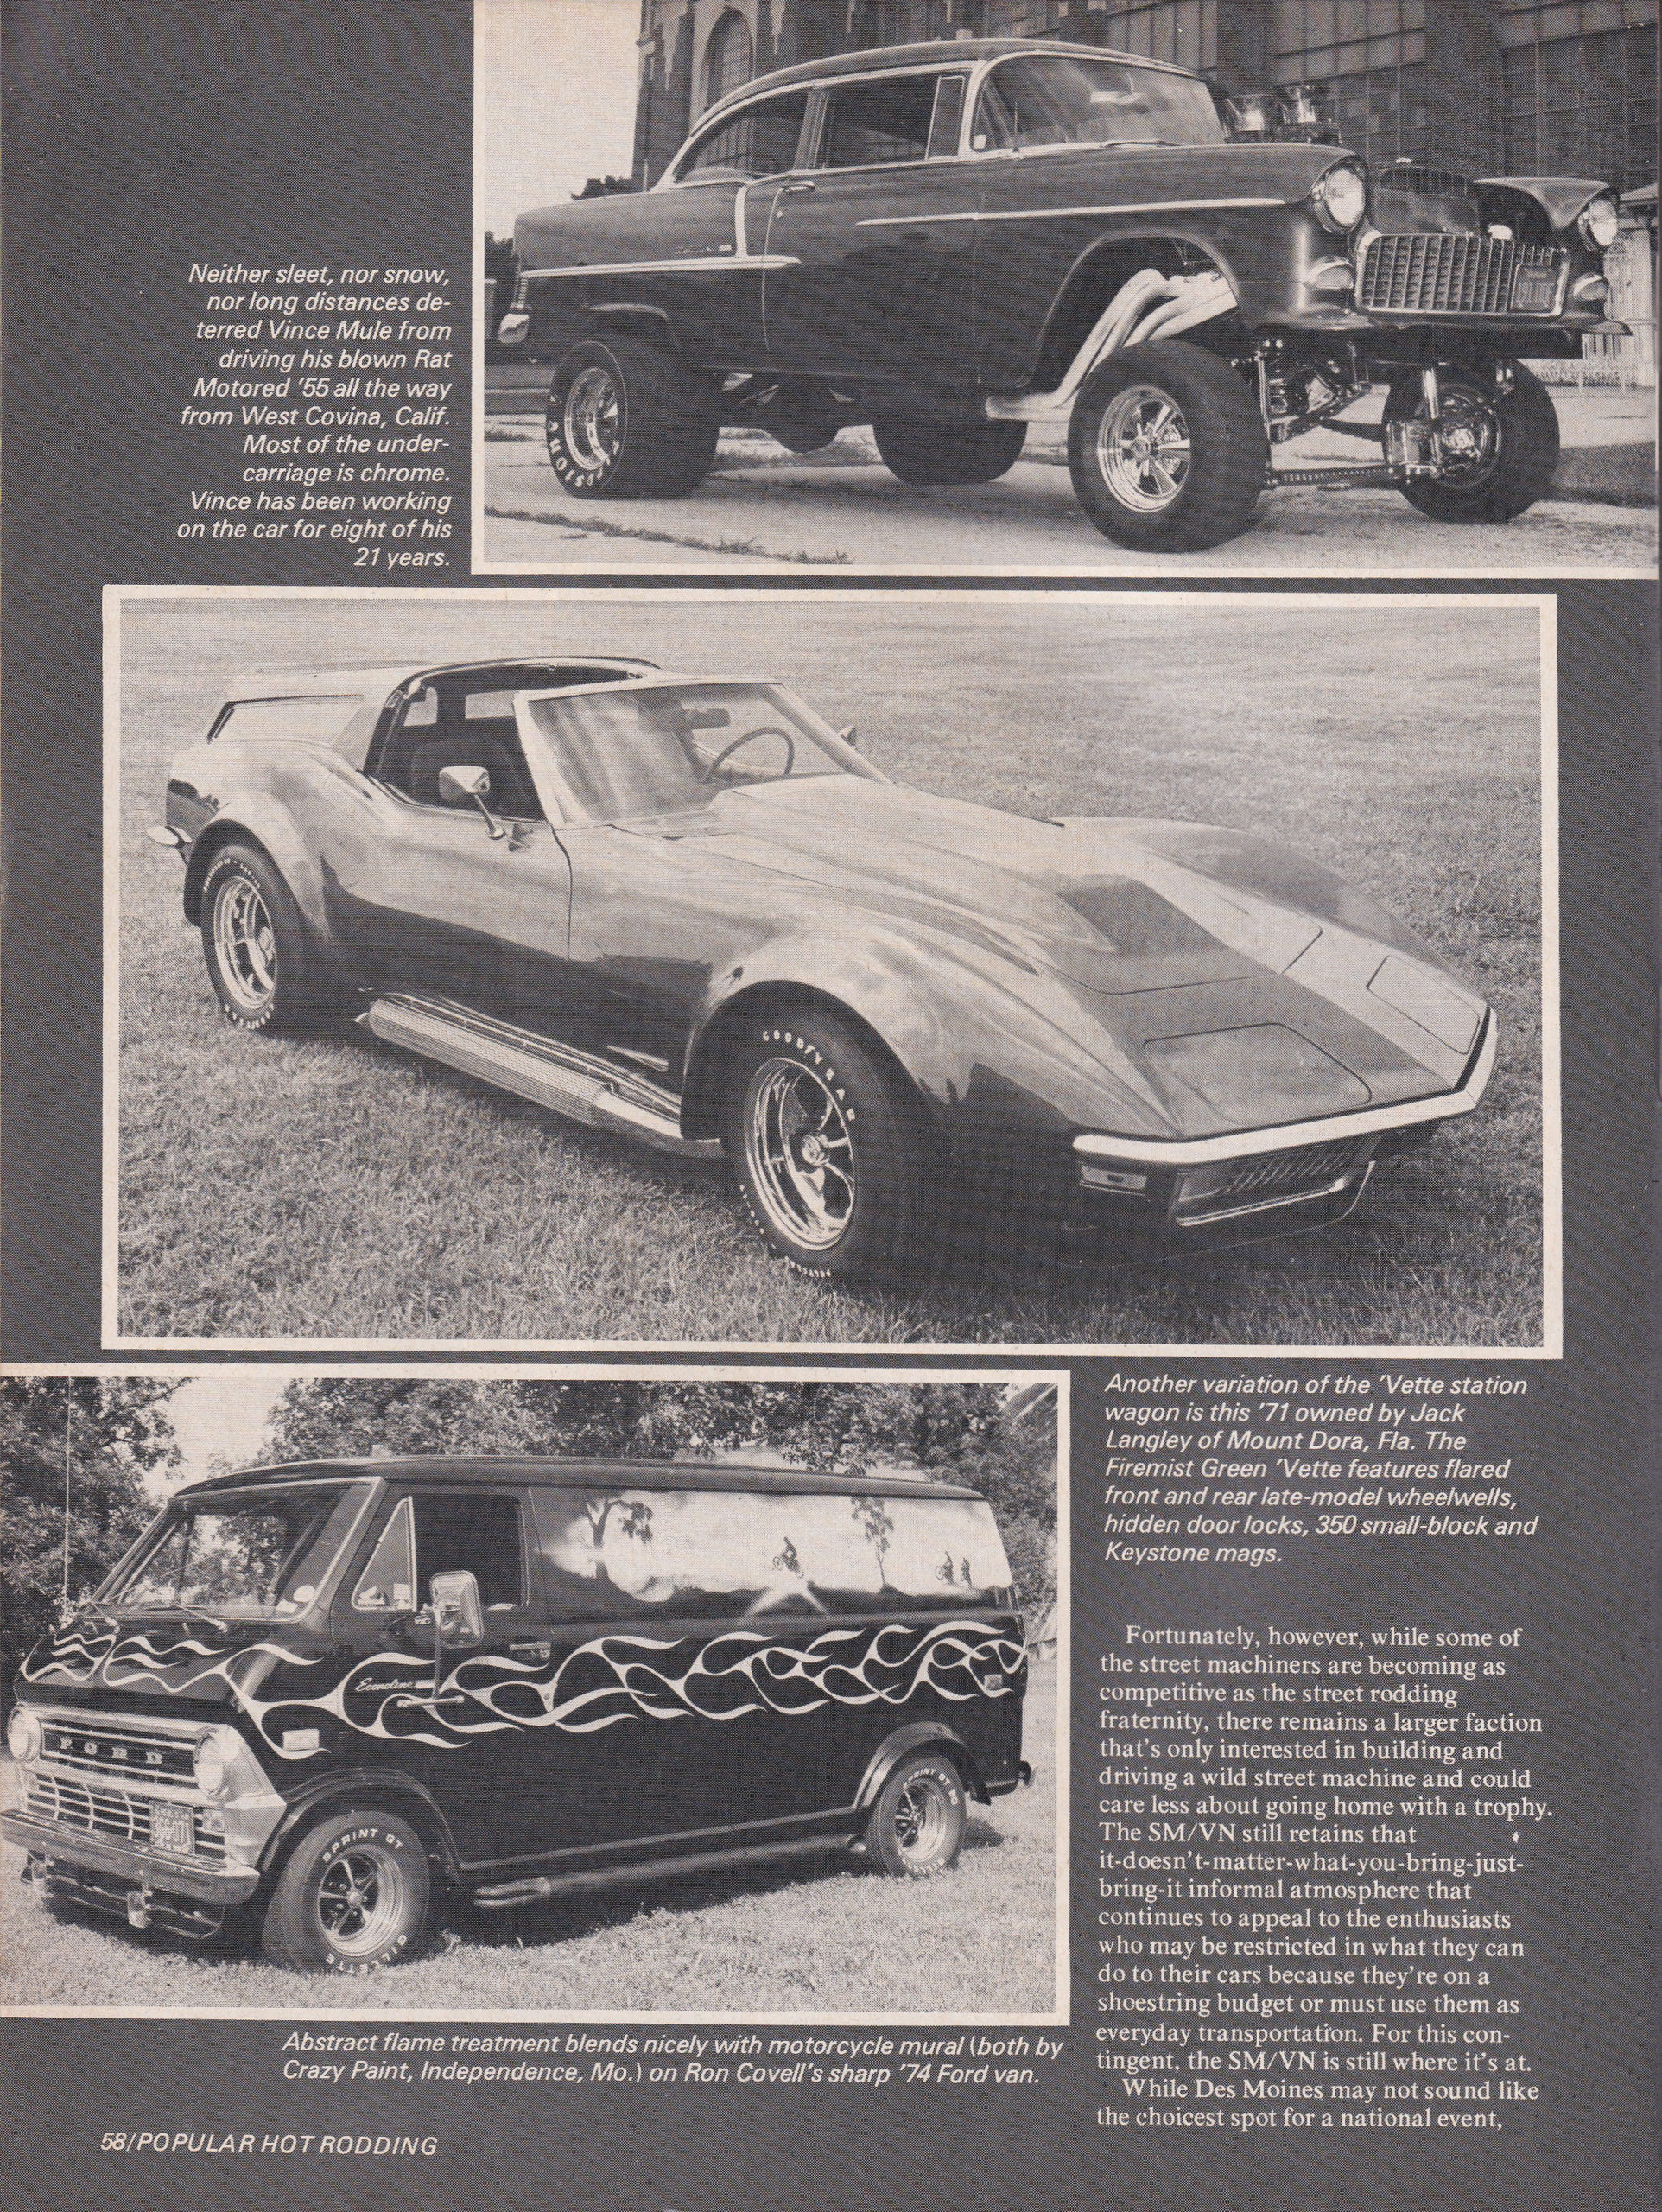 Street Machine / Van Nationals section from October 1975 issue of Popular Hot Rodding, page 3.